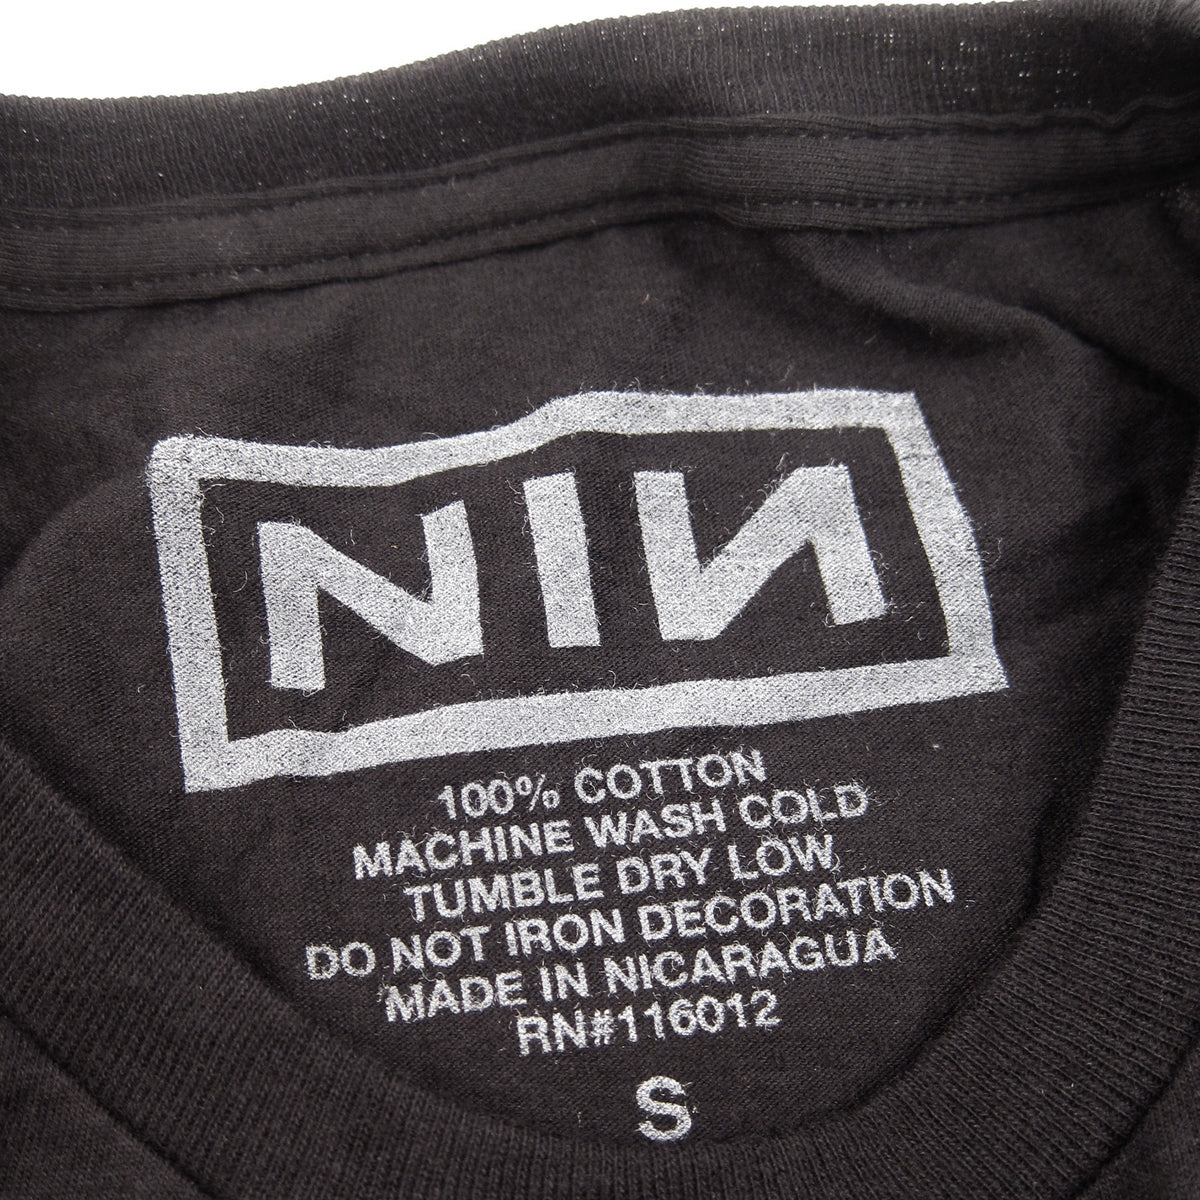 Nine Inch Nails: Grey Logo Shirt - Black